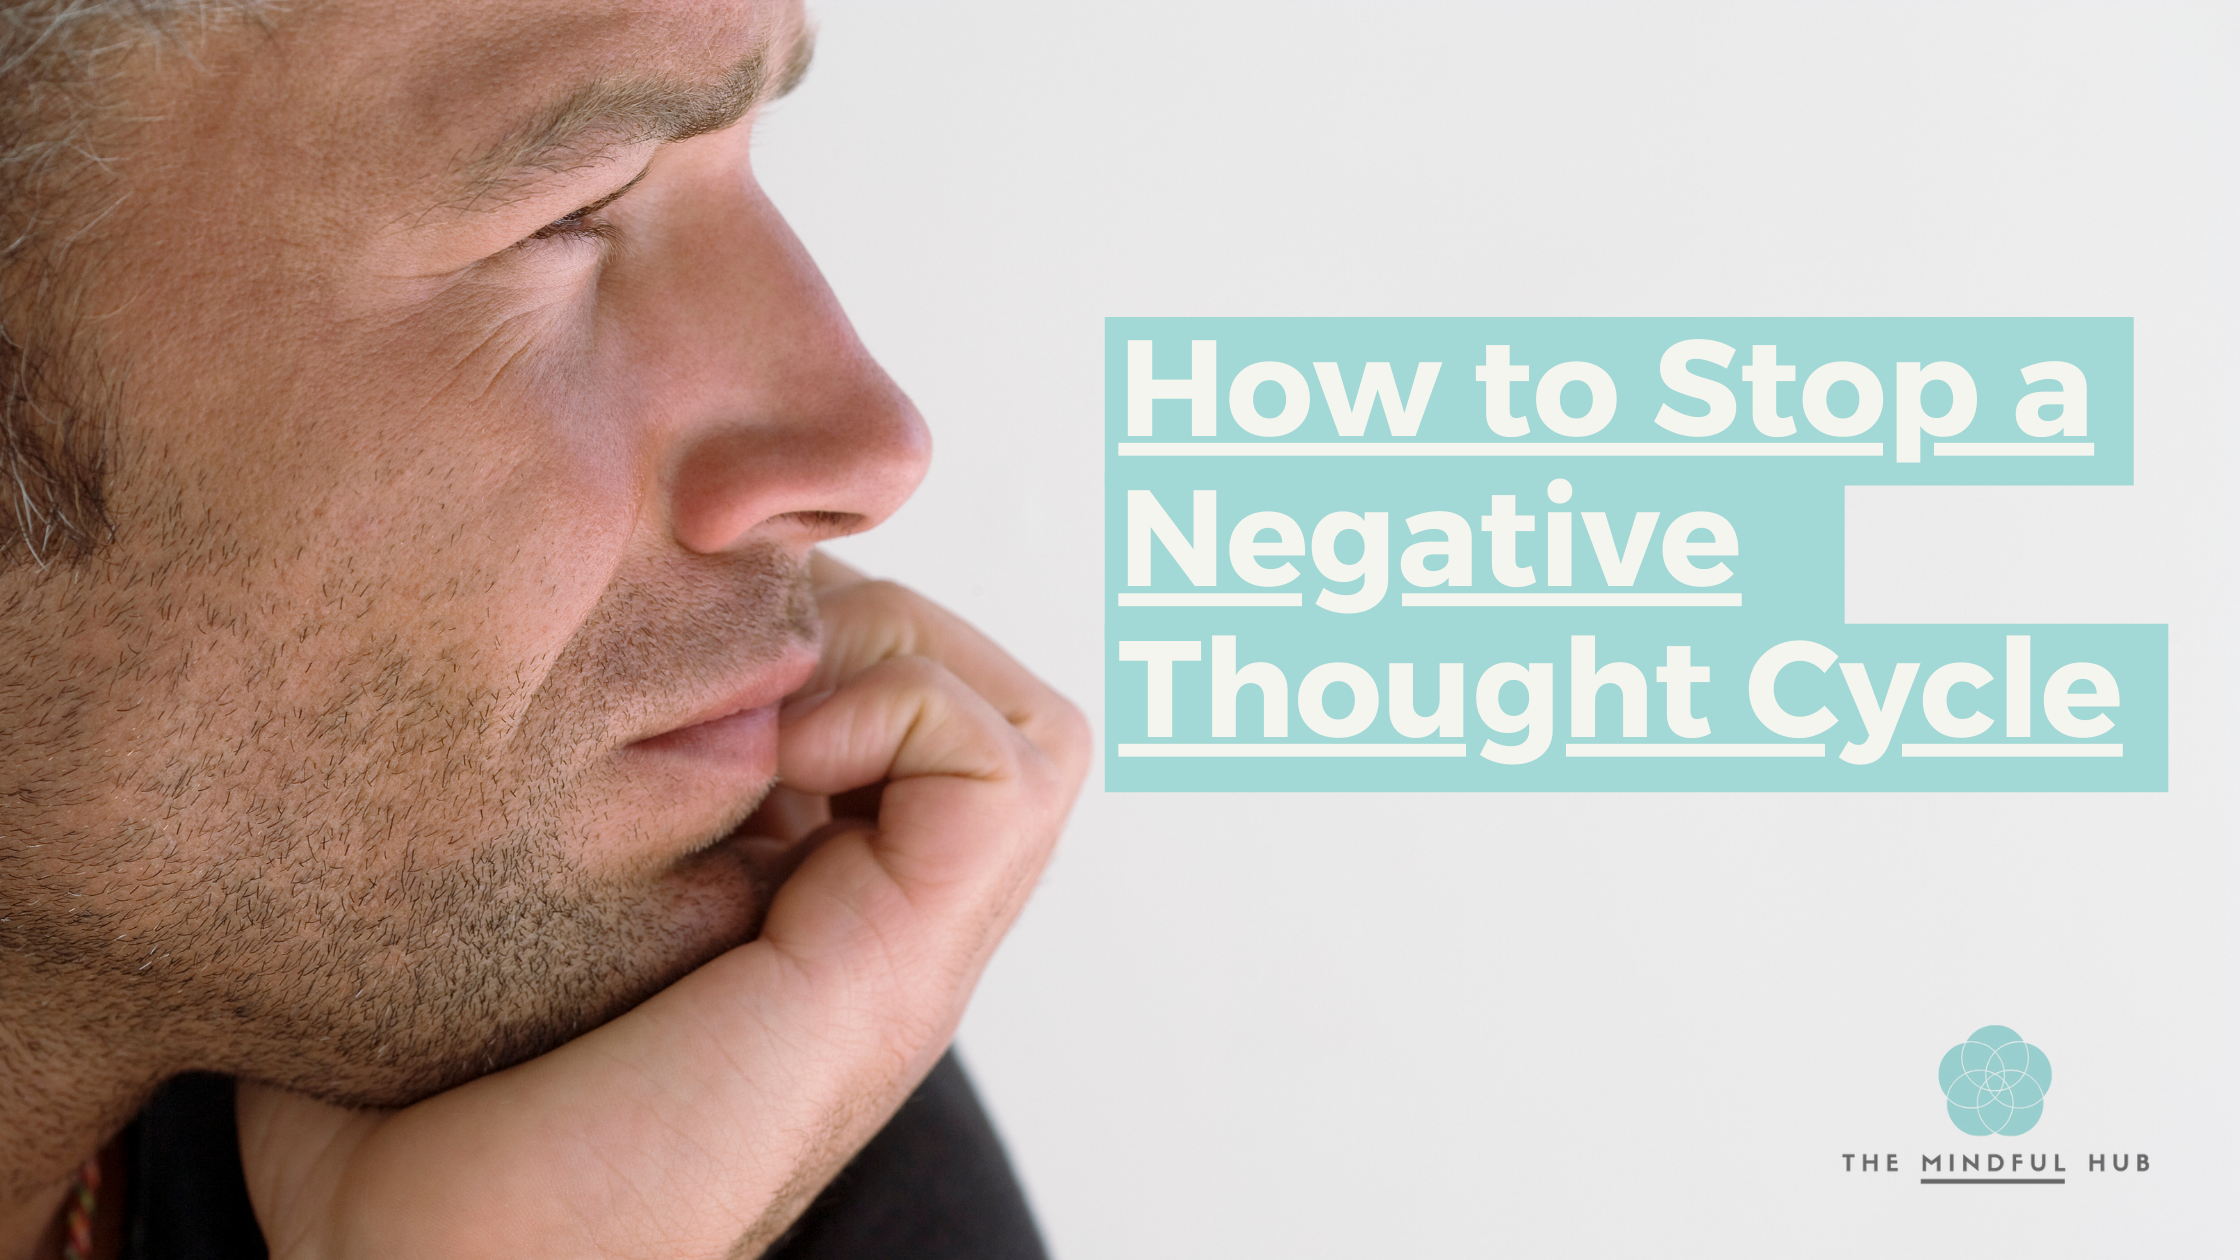 How to stop a negative thought cycle